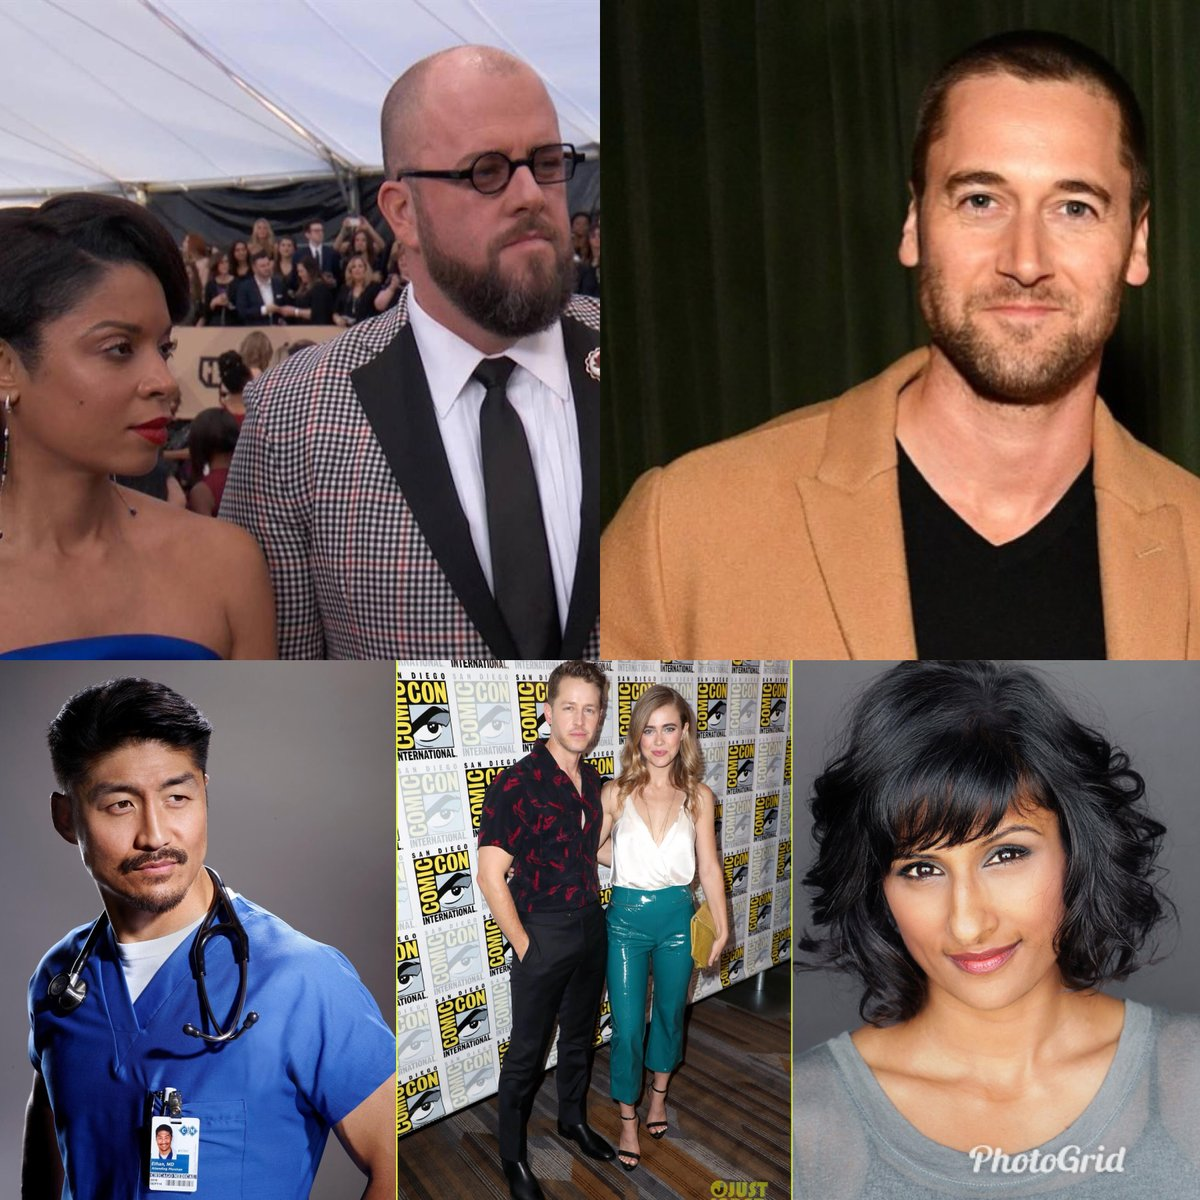 This week on Talk Stoop we're talking to showstoppers @skelechiwatson, @SullivanTweet, @sarayublue, Brian Tee, Ryan Eggold,@JoshDallas &  dro@melissaroxburghp by the stoop to dish on their latest projects. Make sure you tune into these NBC powerhouses tonight after 1st Look.